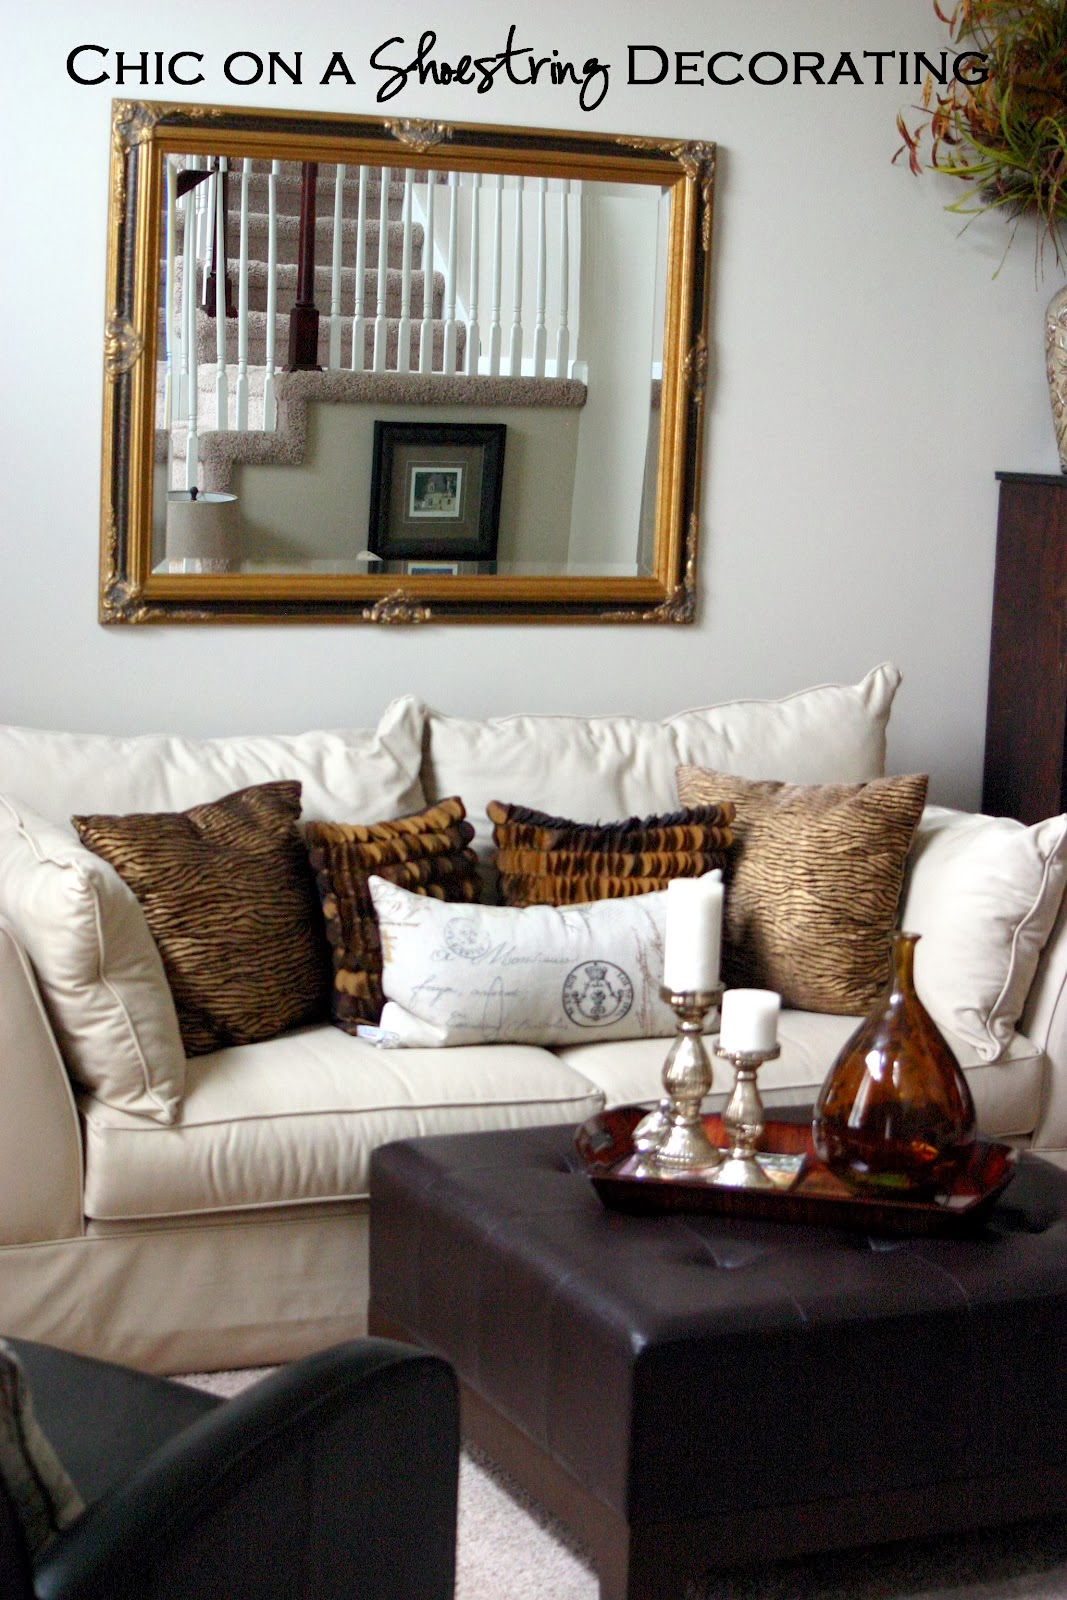 Chic on a Shoestring Decorating: Living Room Makeover on a Budget ...